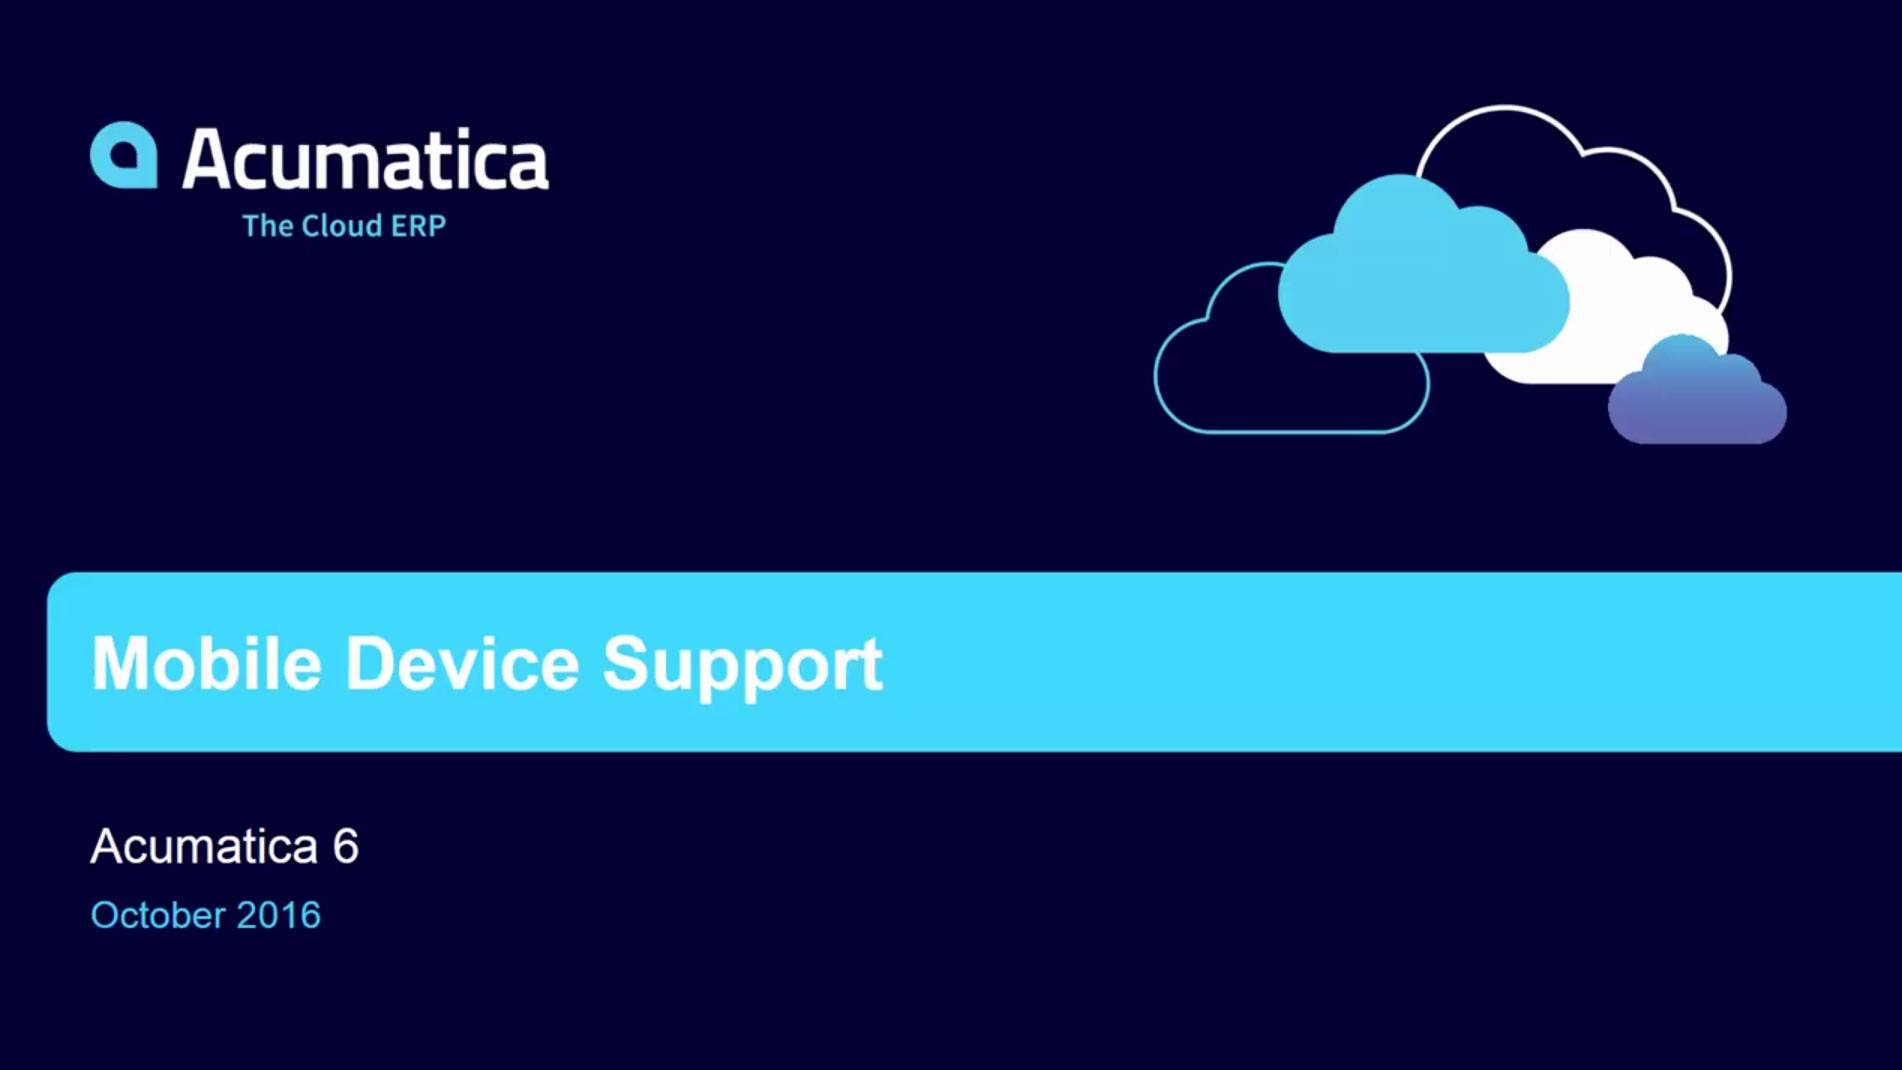 Mobile Device Support in Acumatica